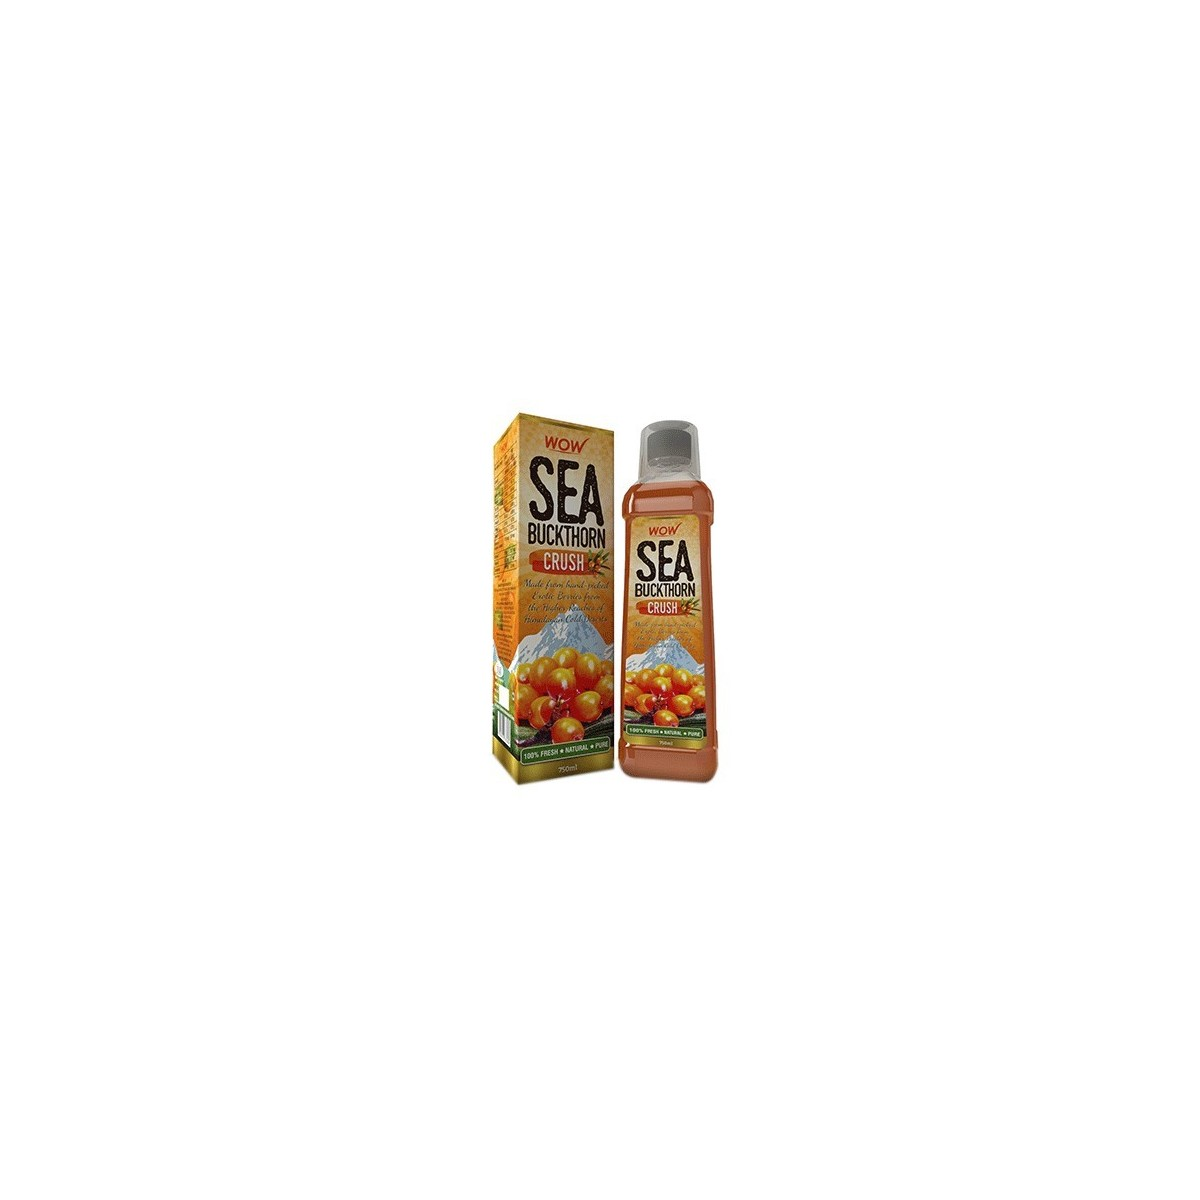 Wow Sea Buckthorn Crush (Pack Of 1)